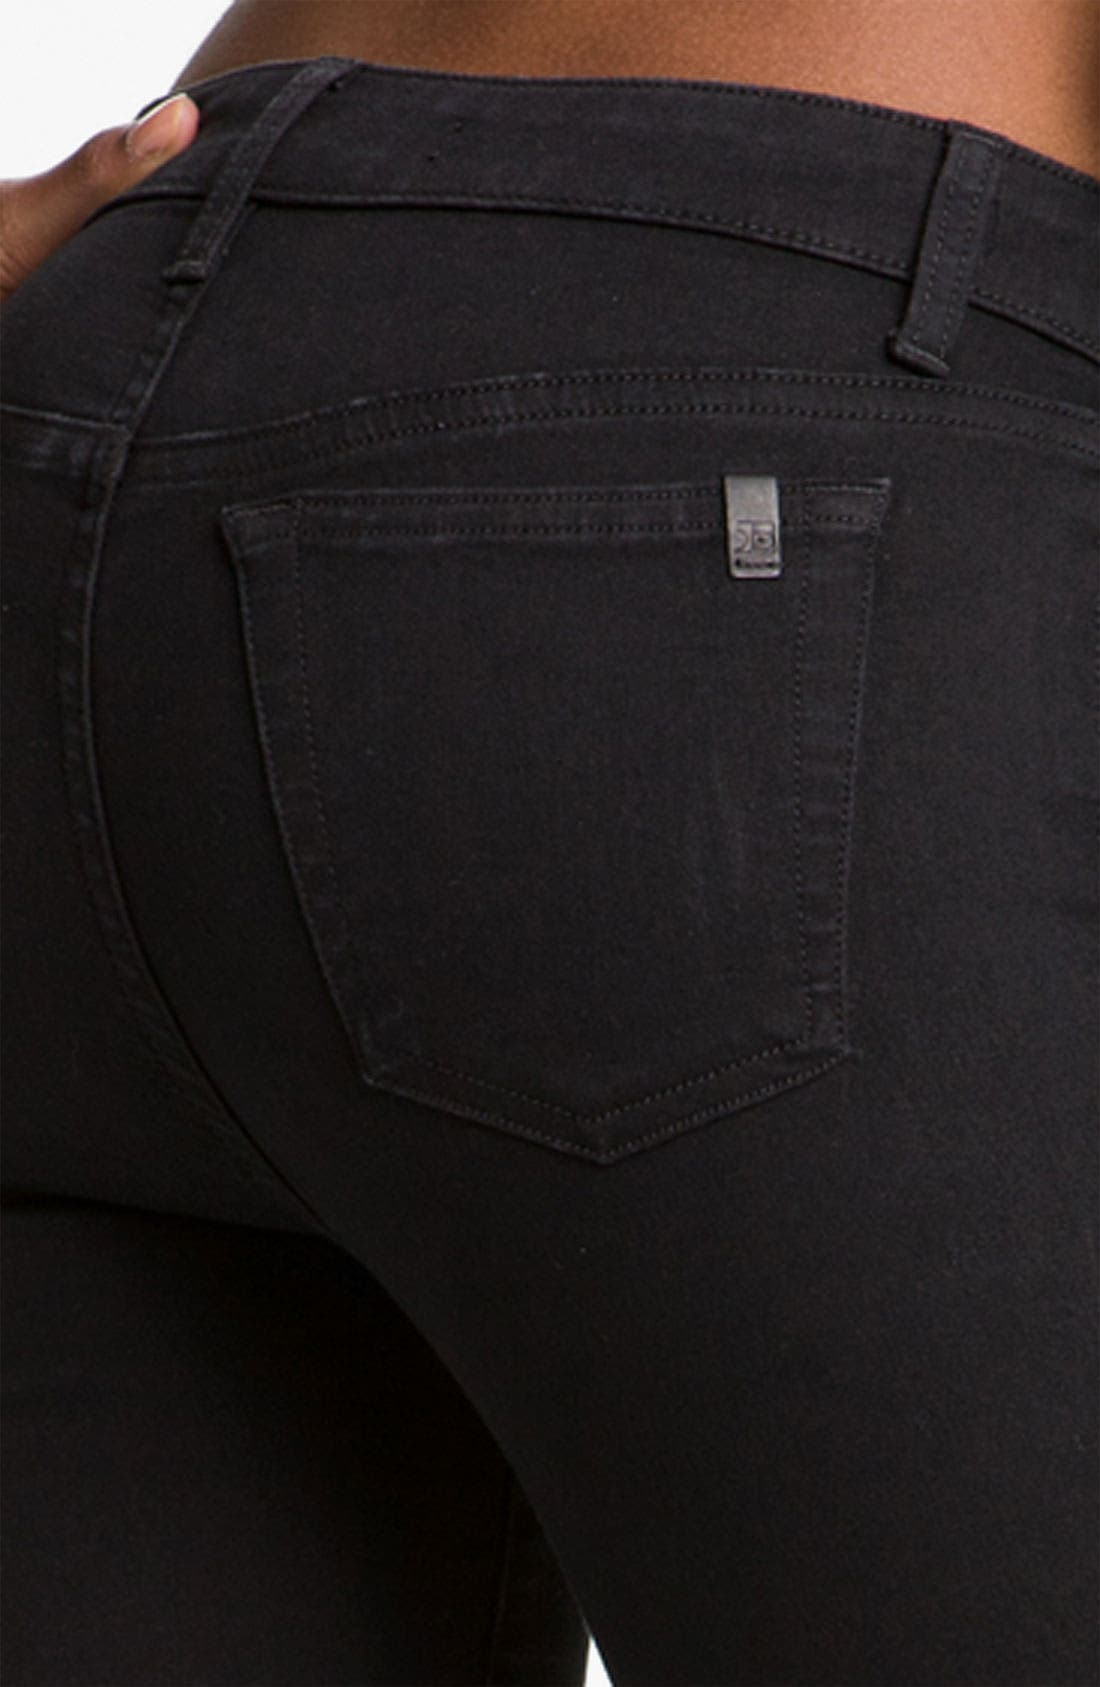 Skinny Stretch Jeans,                             Alternate thumbnail 2, color,                             001